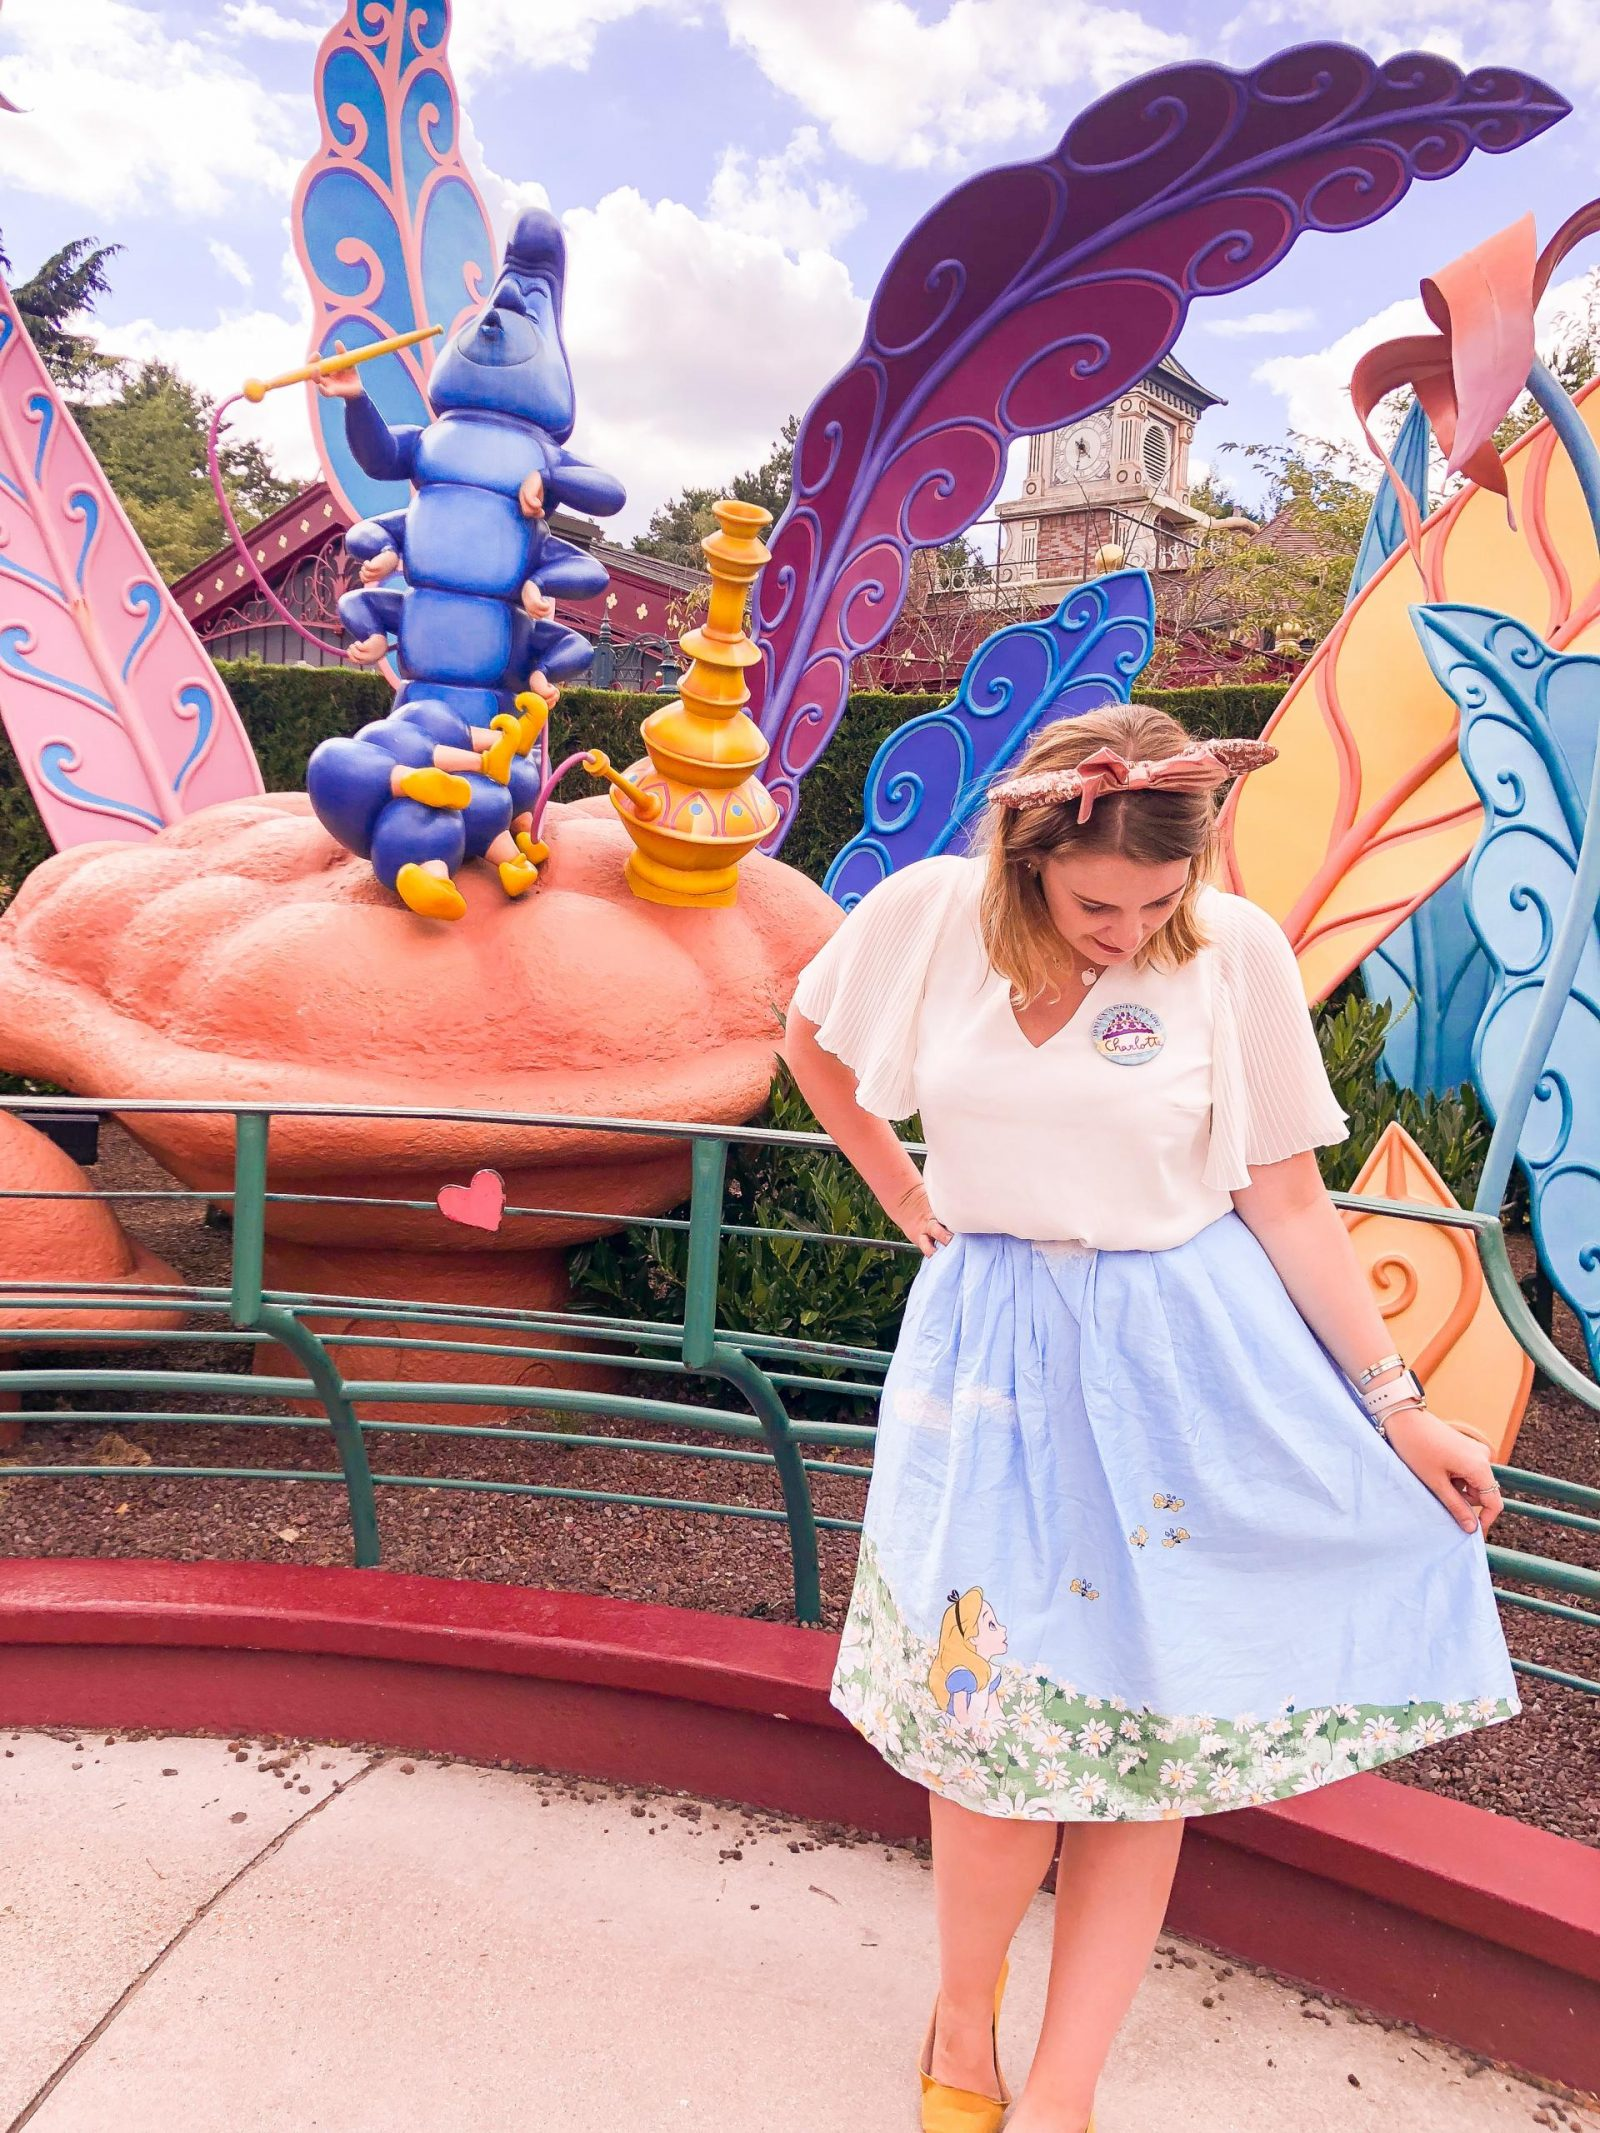 Alice's Curious Labyrinth - one of the most Instagrammable spots at Disneyland Paris